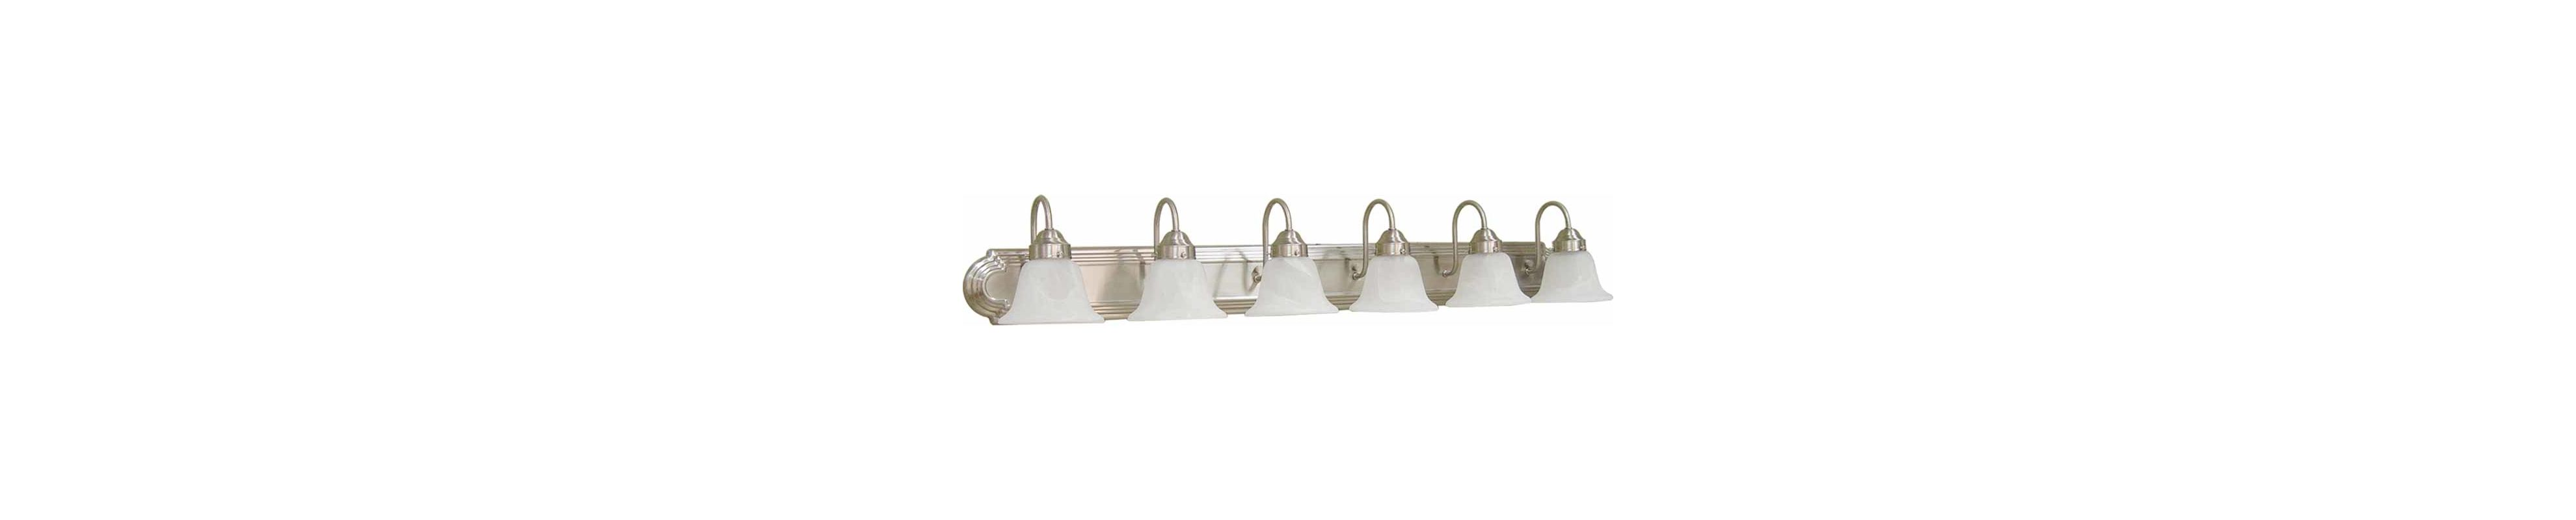 "Volume Lighting V1346 Marti 6 Light 48"" Width Bathroom Vanity Light"